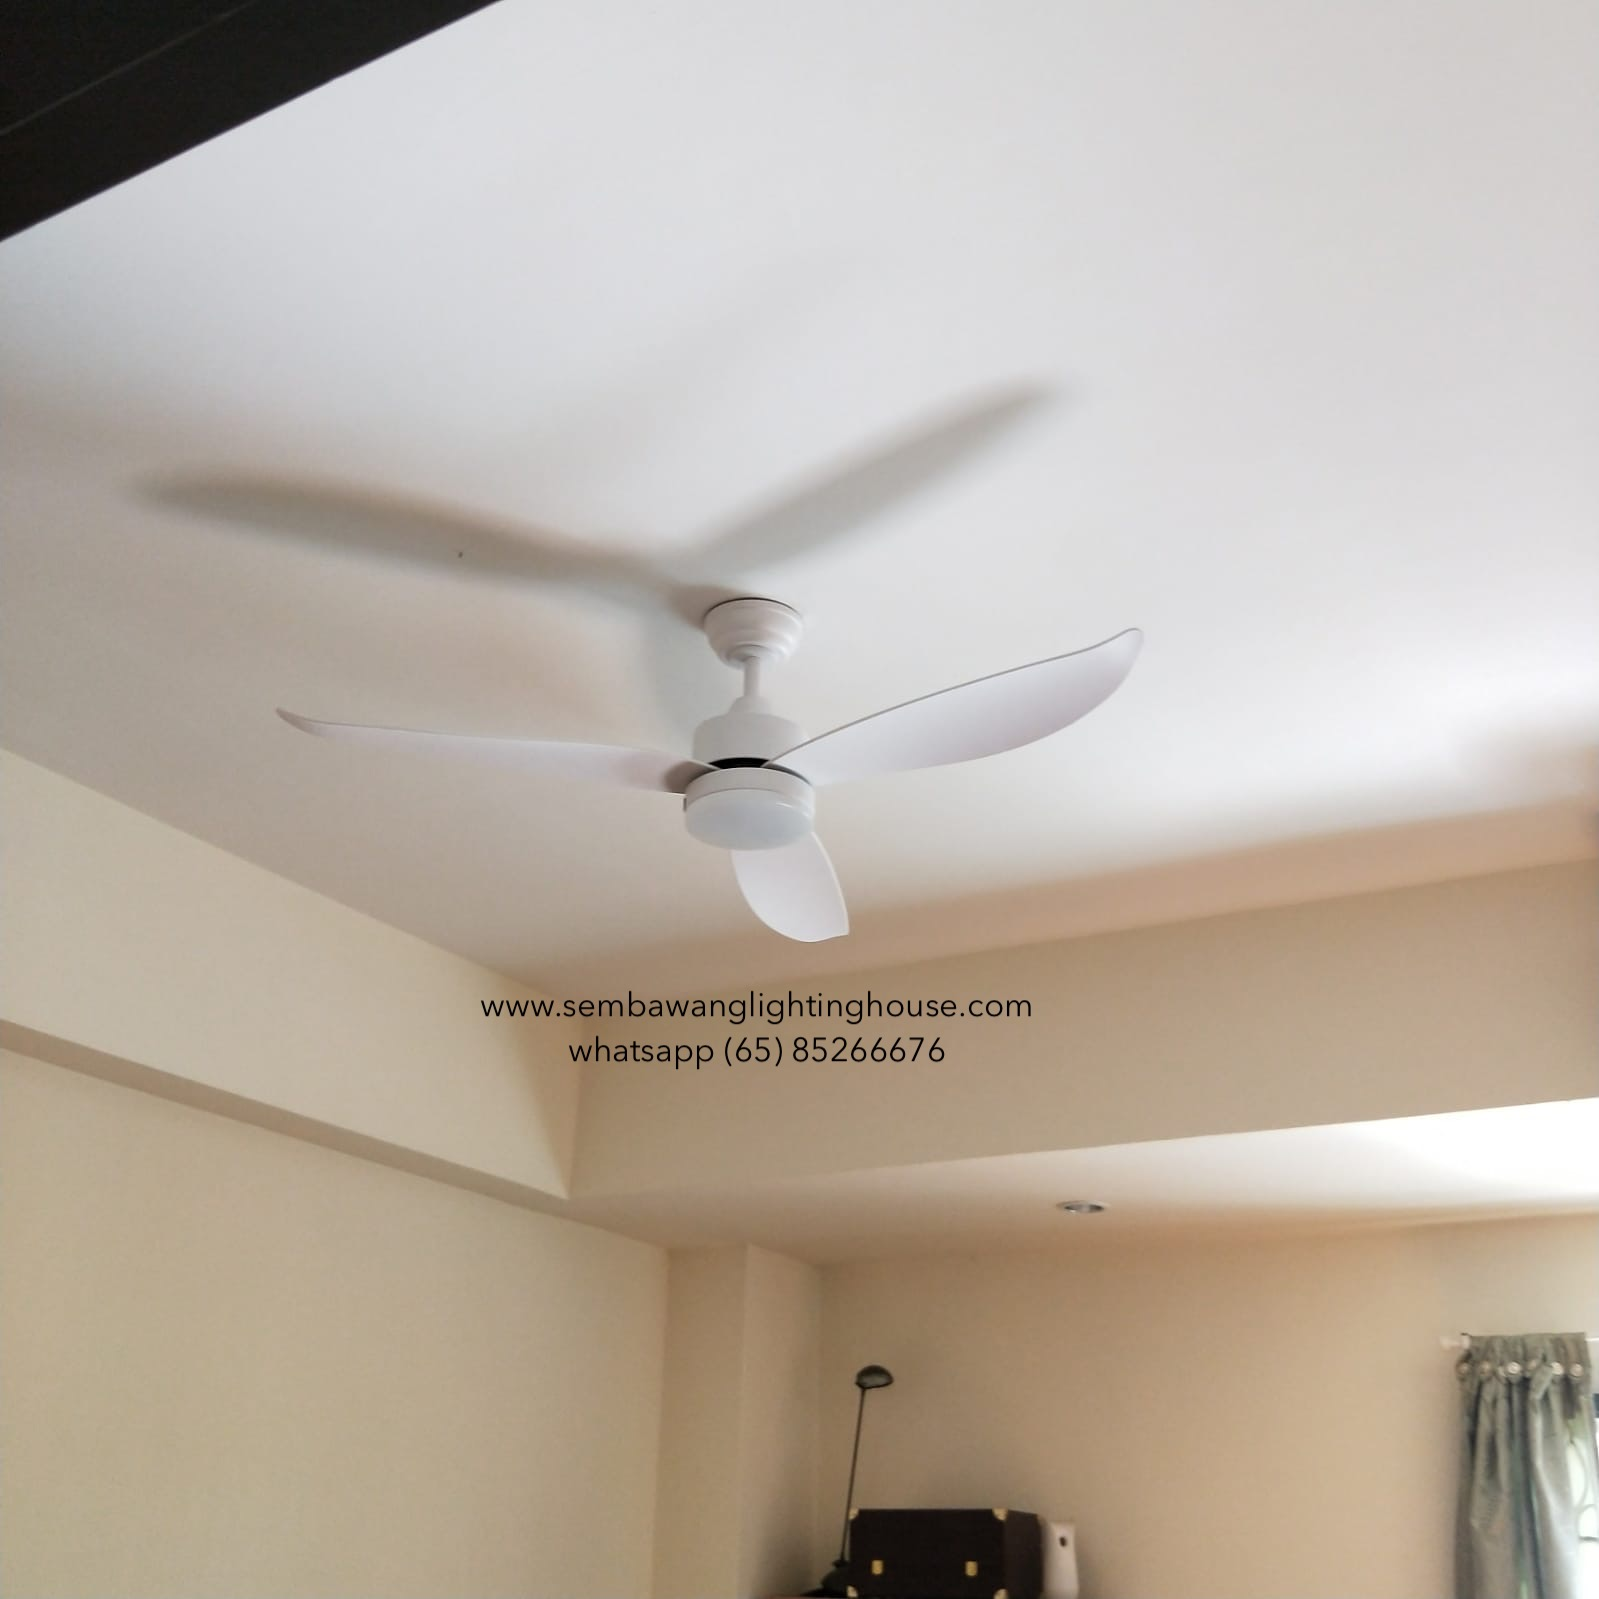 bestar-razor-white-ceiling-fan-sembawang-lighting-house-04.jpg